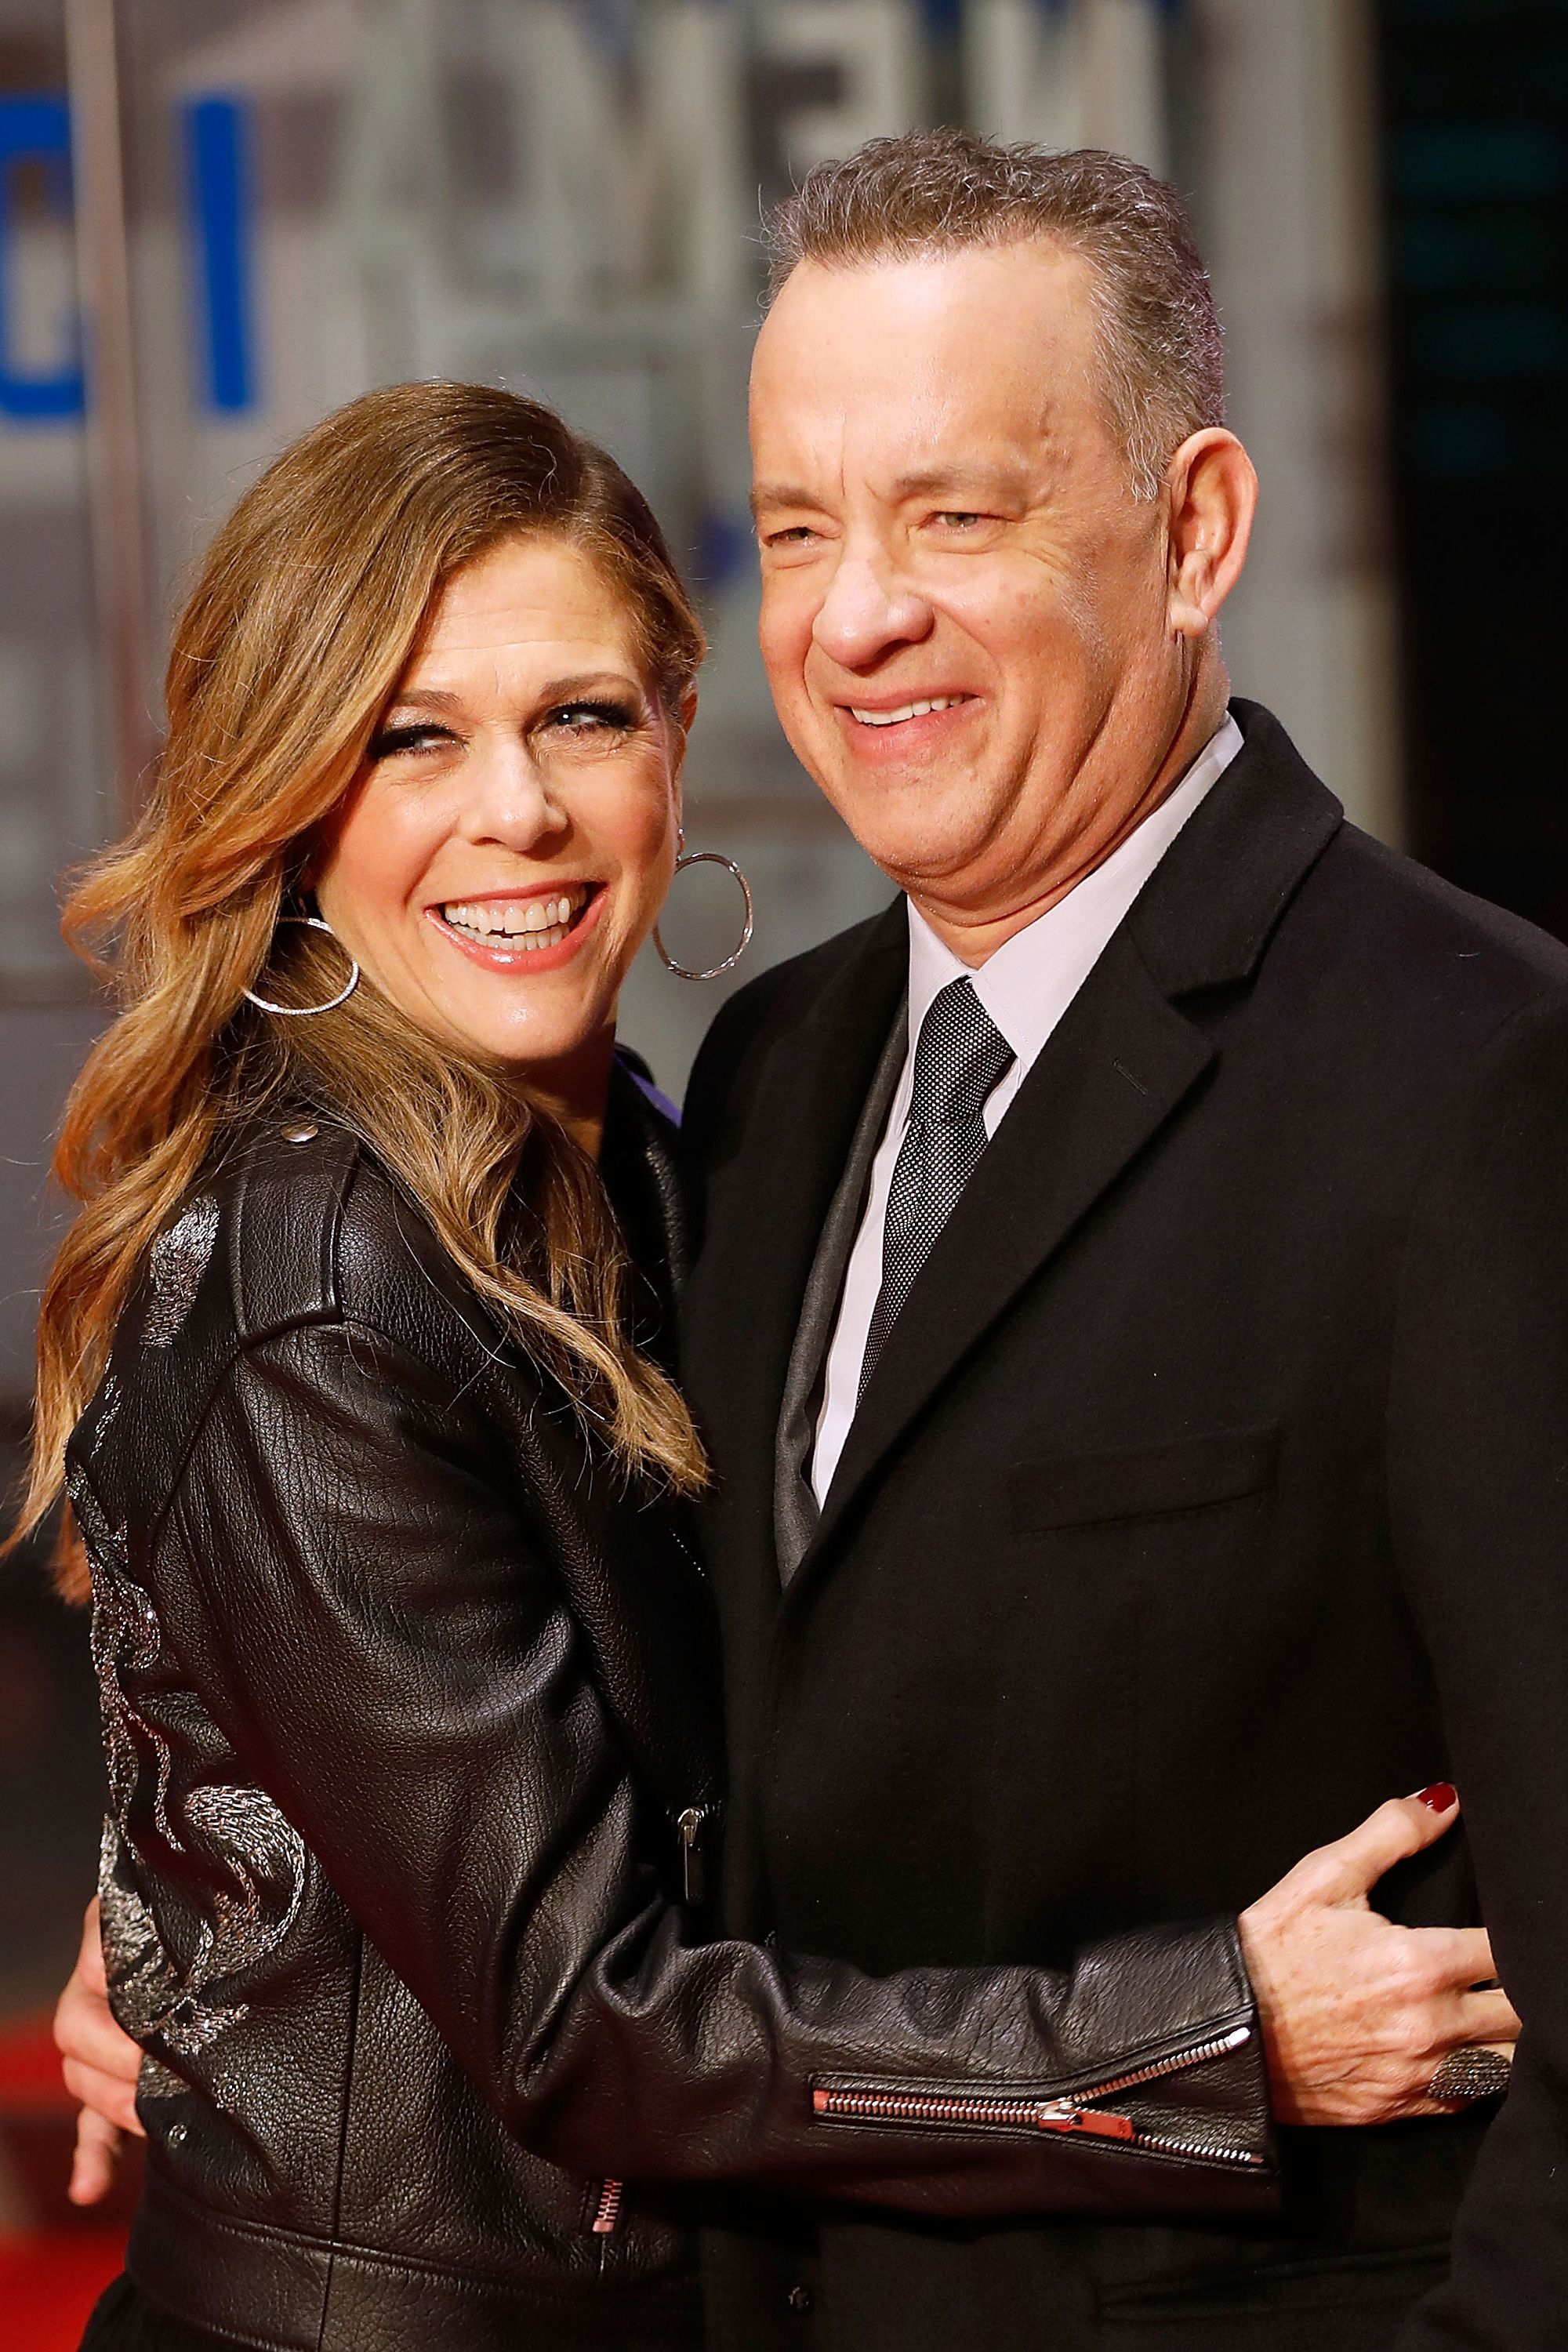 """<p><u data-redactor-tag=""""u"""" data-tracking-id=""""recirc-text-link"""">The adorable couple</u> have been married for nearly 30 years–<span class=""""redactor-invisible-space""""></span>longer than many Hollywood pairs. And it hasn't always been an easy ride, especially when Wilson was <a href=""""http://people.com/celebrity/rita-wilson-breast-cancer-actress-undergoes-double-mastectomy-reconstruction/"""" target=""""_blank"""" data-tracking-id=""""recirc-text-link"""">diagnosed with breast cancer</a> in 2015. But they came through stronger than ever. 'When we first looked at each other there was definitely a kind of, """"Hey, this is the place!""""–<span class=""""redactor-invisible-space""""></span>I felt that anyway,'Hanks said in an interview with <a href=""""http://www.etonline.com/news/175548_tom_hanks_on_his_27_year_marriage_to_rita_wilson_we_got_married_for_all_the_right_reasons"""" target=""""_blank""""><em data-redactor-tag=""""em"""" data-tracking-id=""""recirc-text-link"""">Entertainment Tonight</em></a>.</p>"""